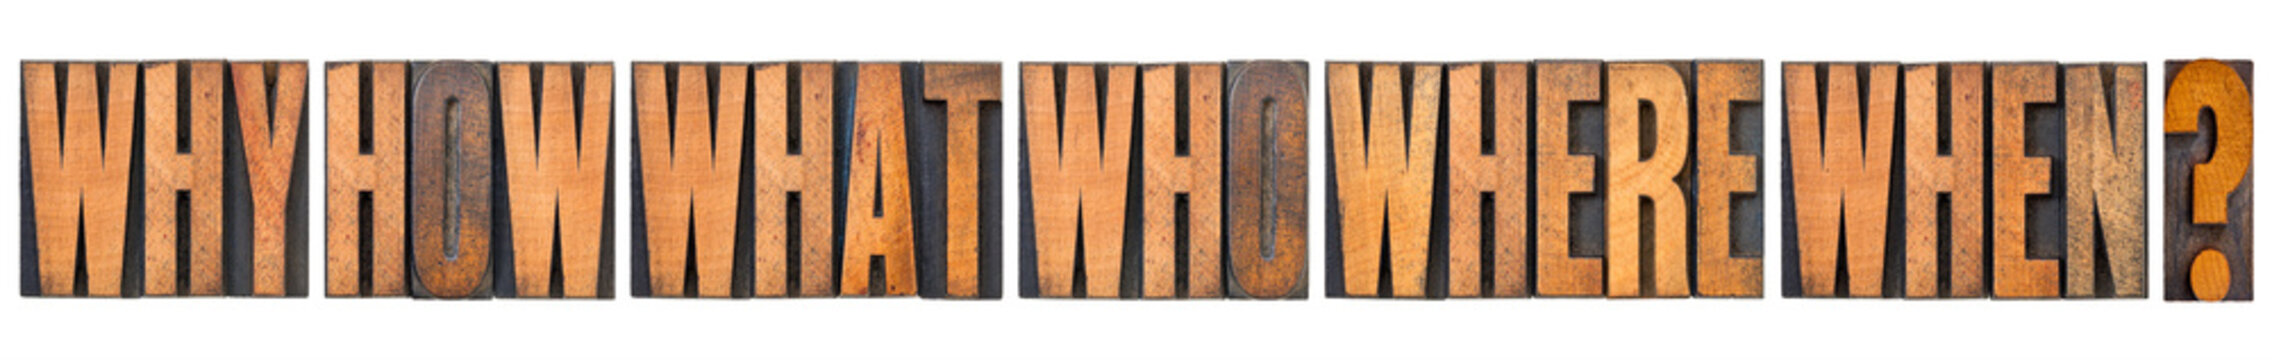 why, how, what, who, where and when questions  - brainstorming or decision making concept - a collage of isolated words in vintage letterpress wood type arranged in a wide banner